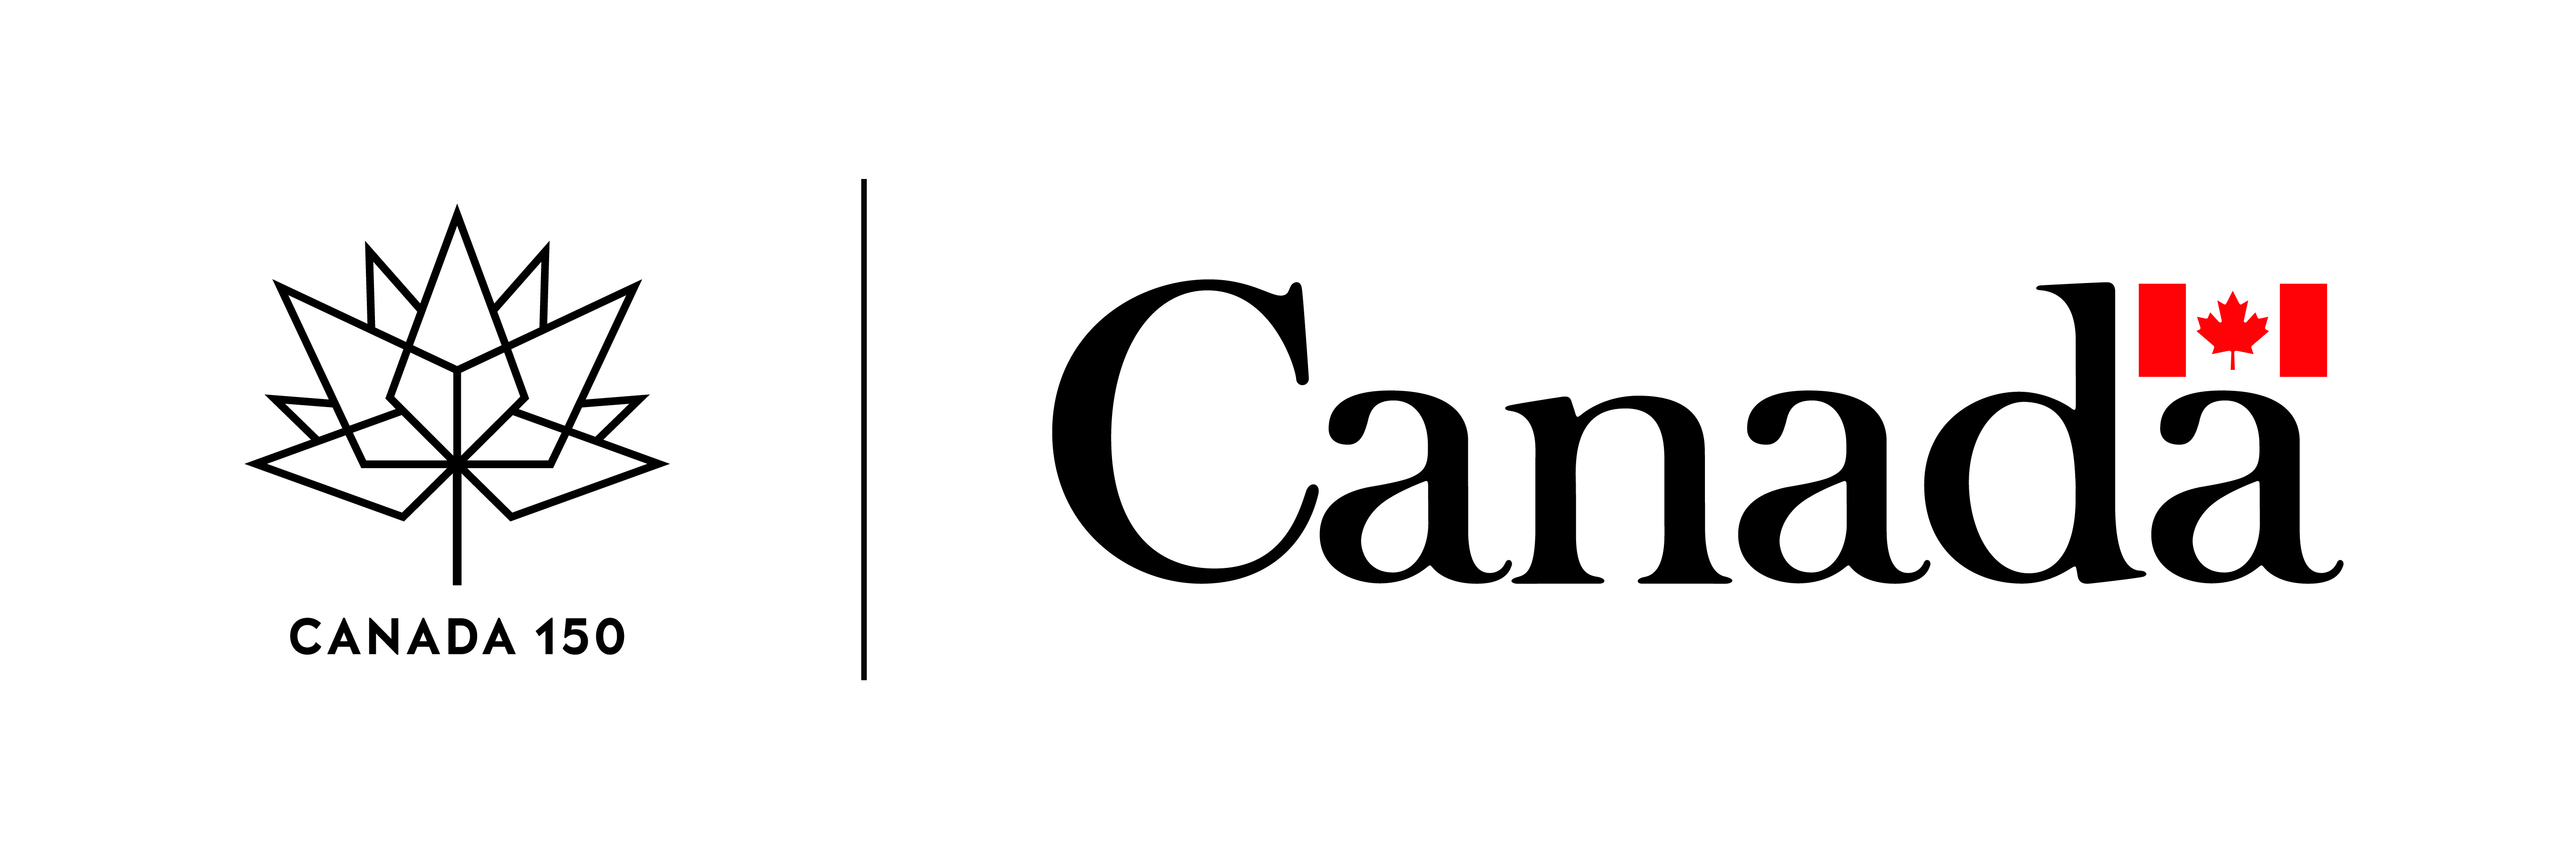 CANADA150 GC LOGO OUTLINE COMPOSITE HIRES